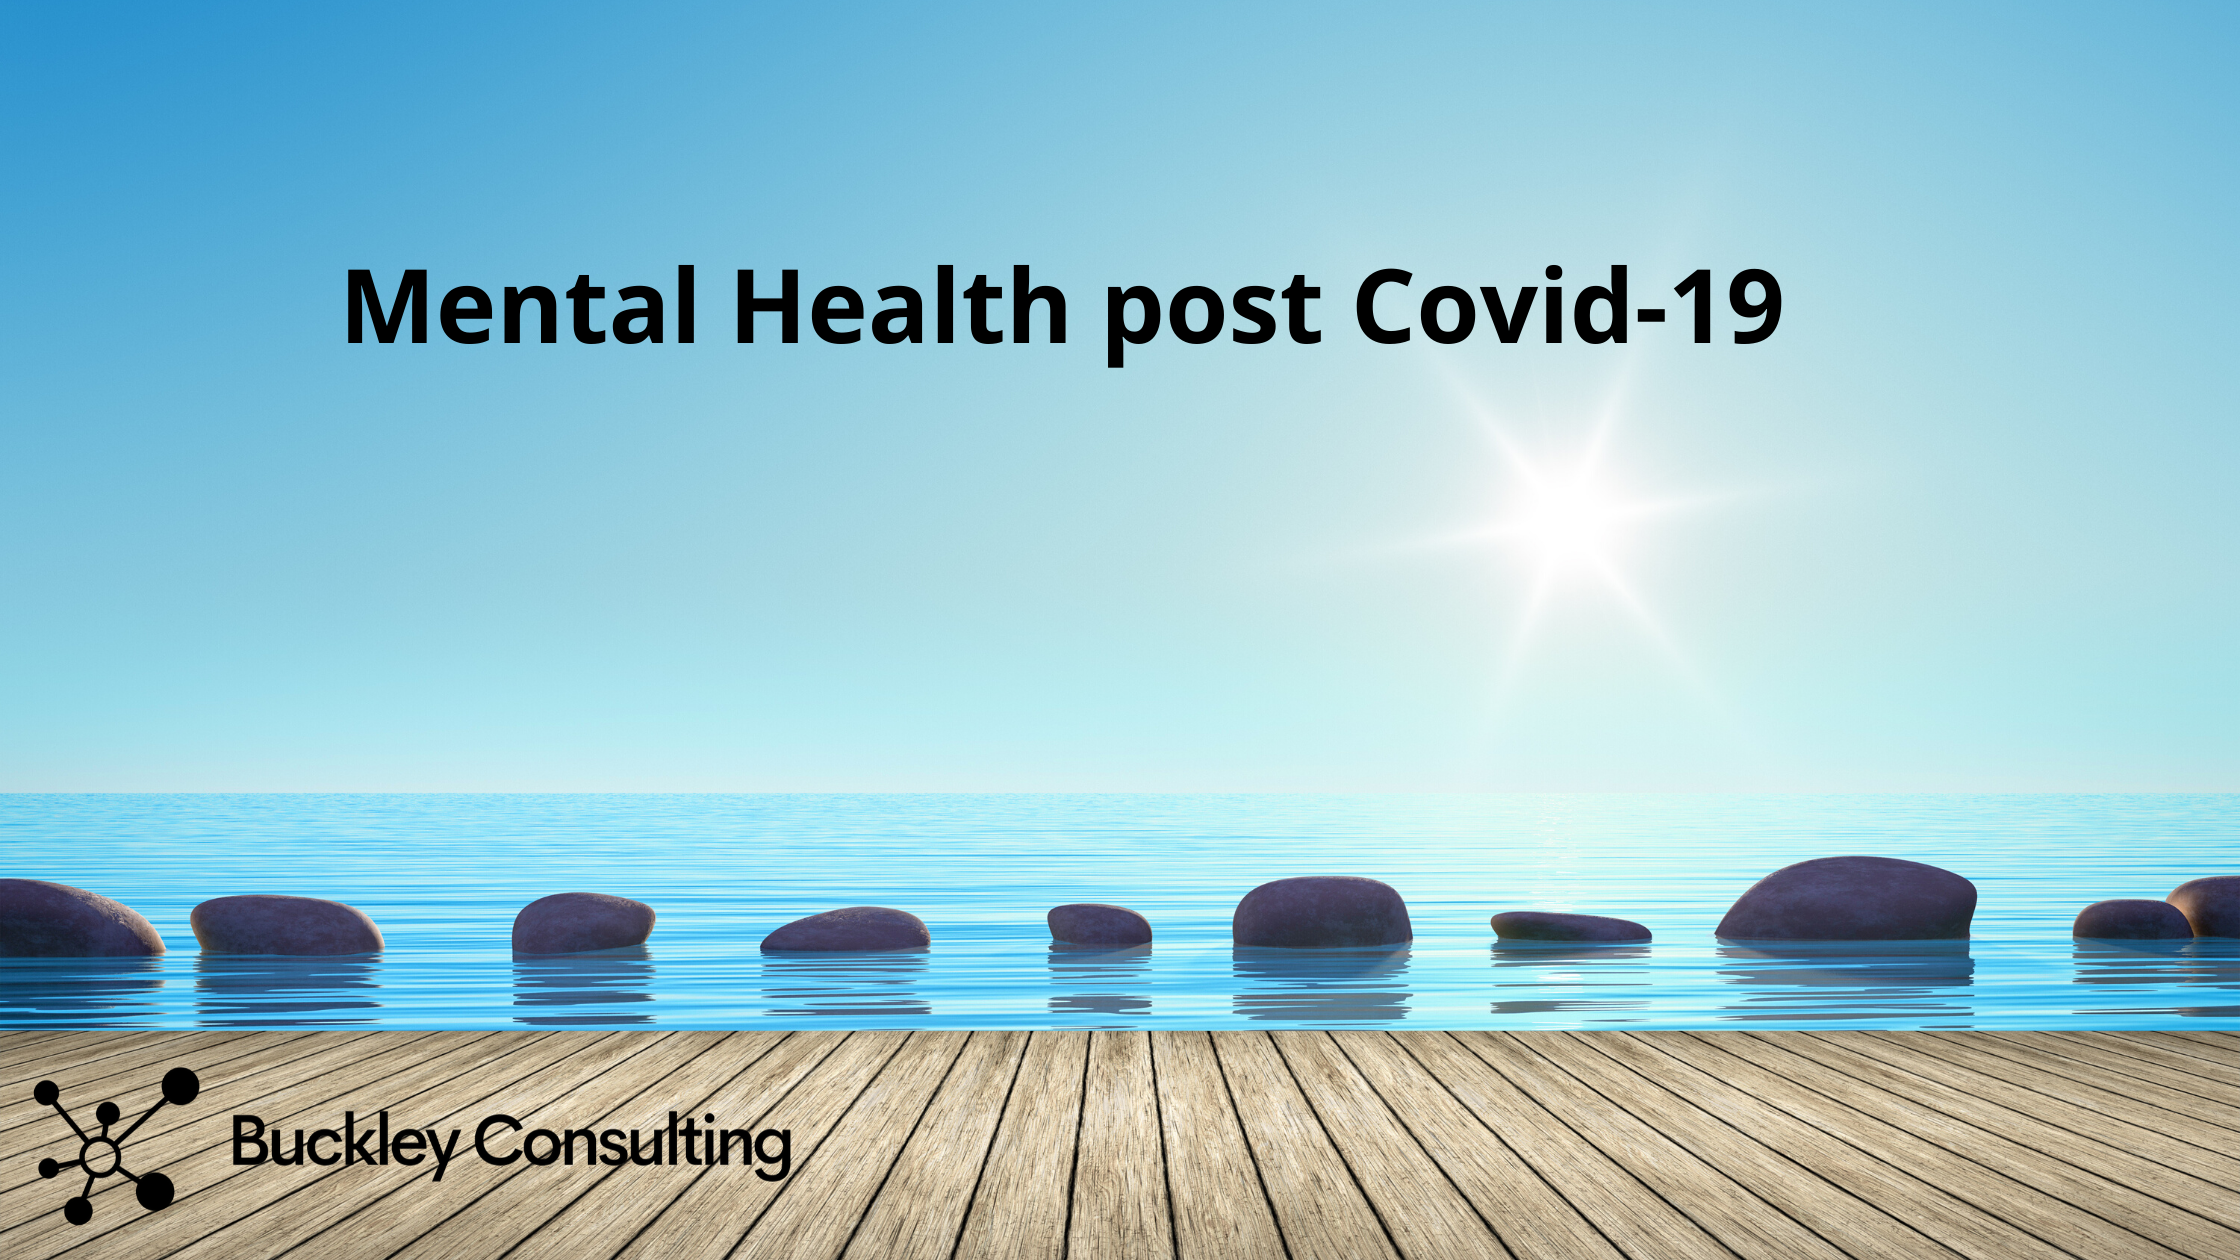 Mental Health post Covid-19 - what can we do to support ourselves and our staff?